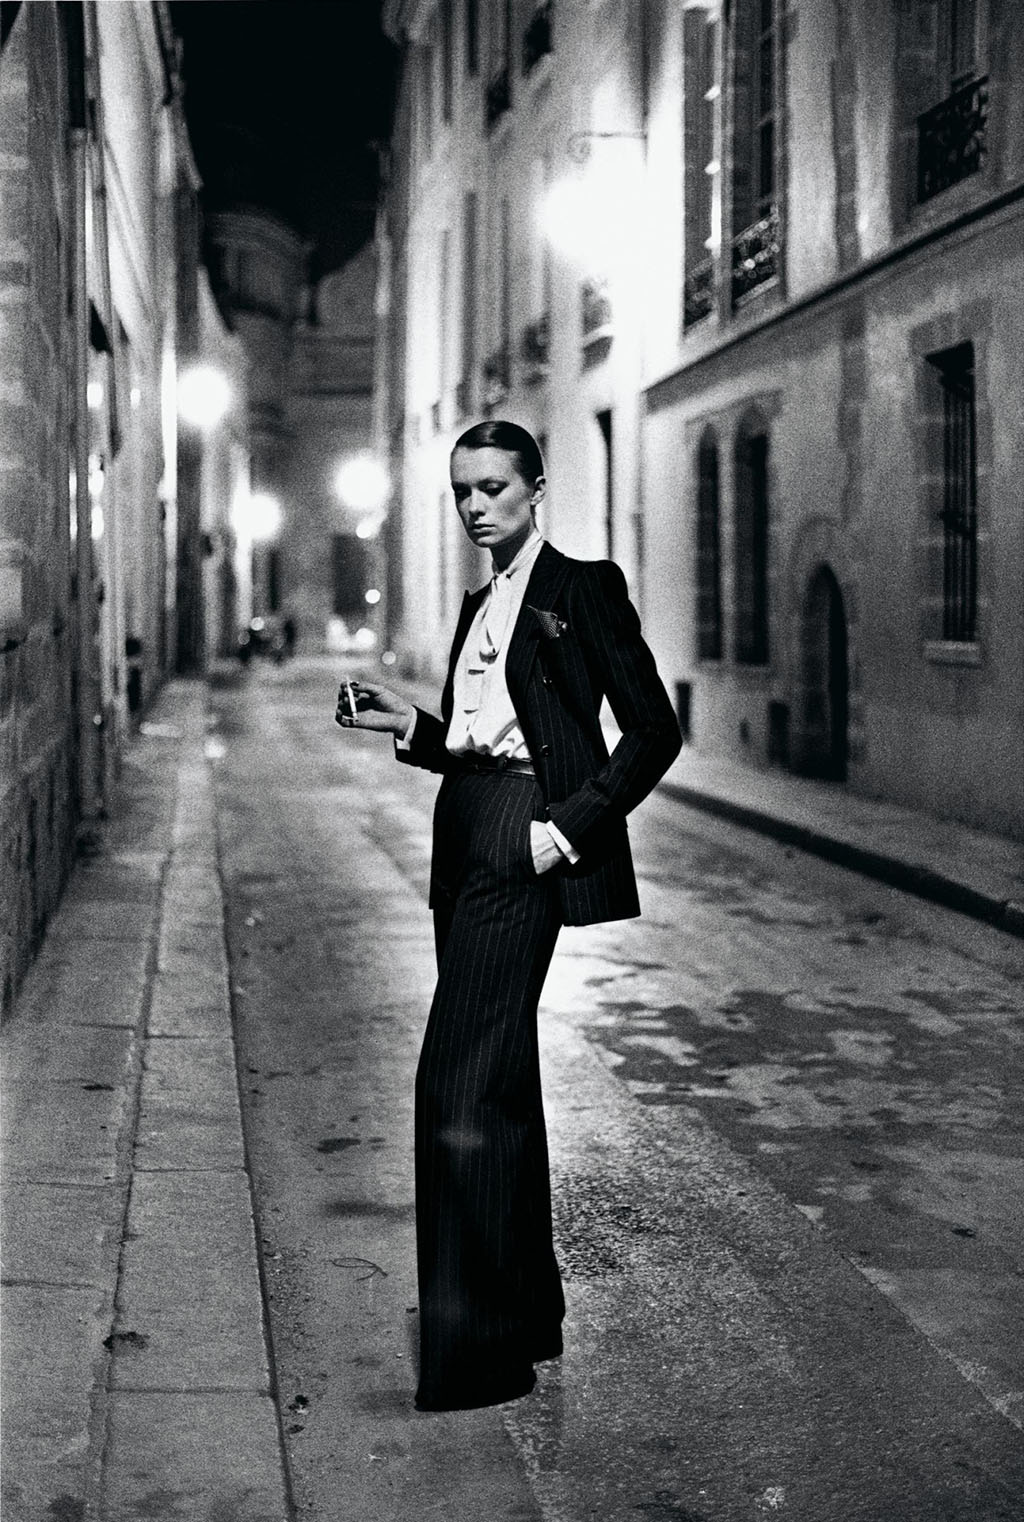 Yves Saint Laurent French Vogue Rue Aubriot, Paris 1975 © Helmut Newton Estate